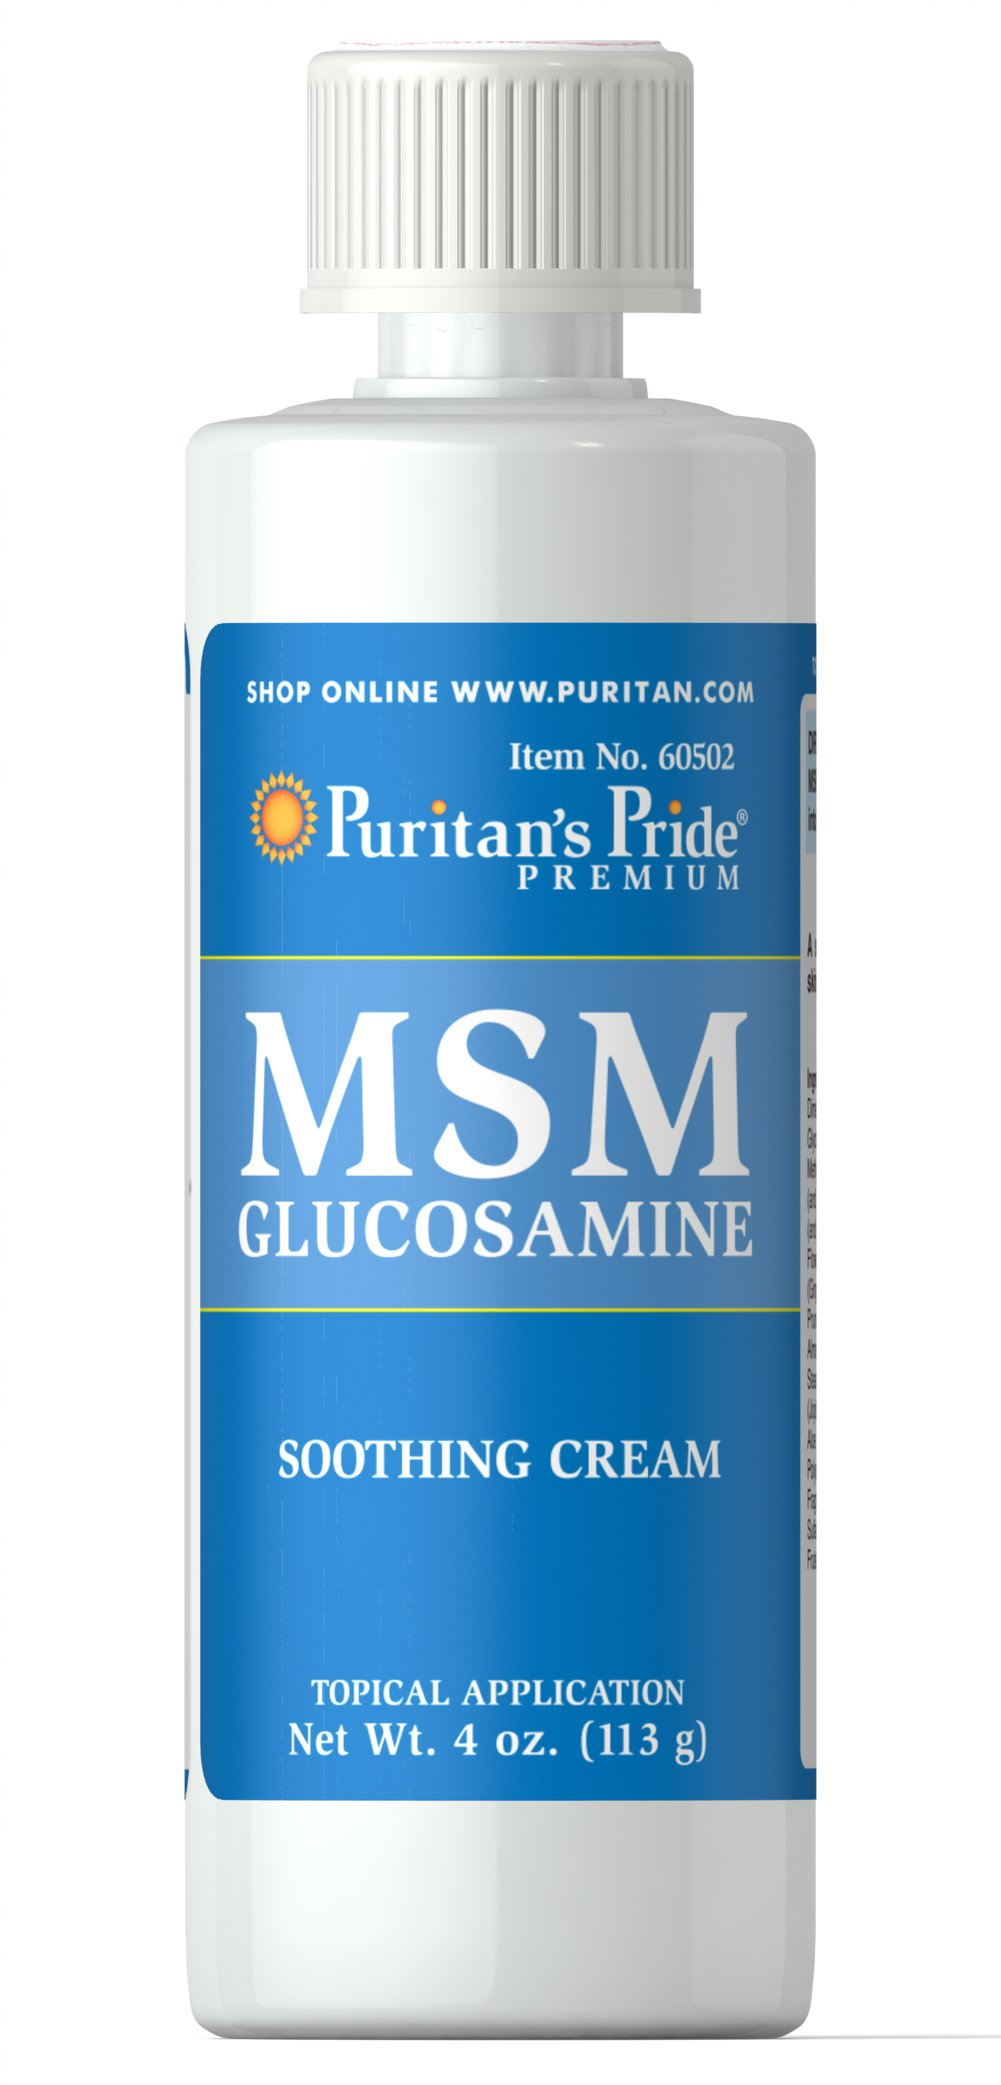 MSM Glucosamine Cream Thumbnail Alternate Bottle View